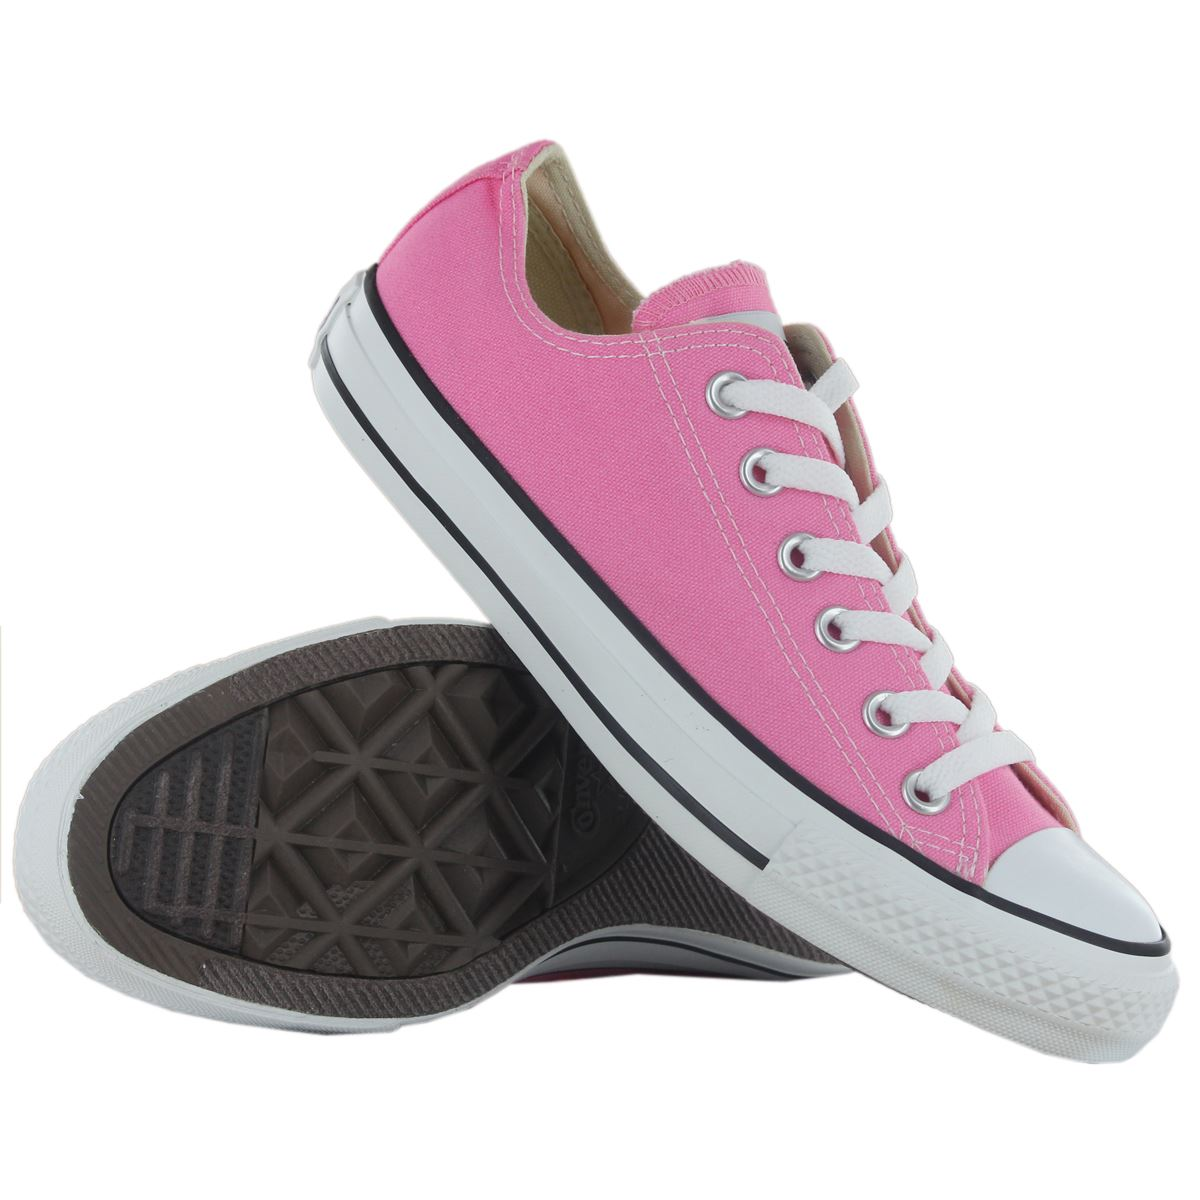 Converse-All-Star-Ox-Unisex-Mens-Womens-Ladies-Trainers thumbnail 17